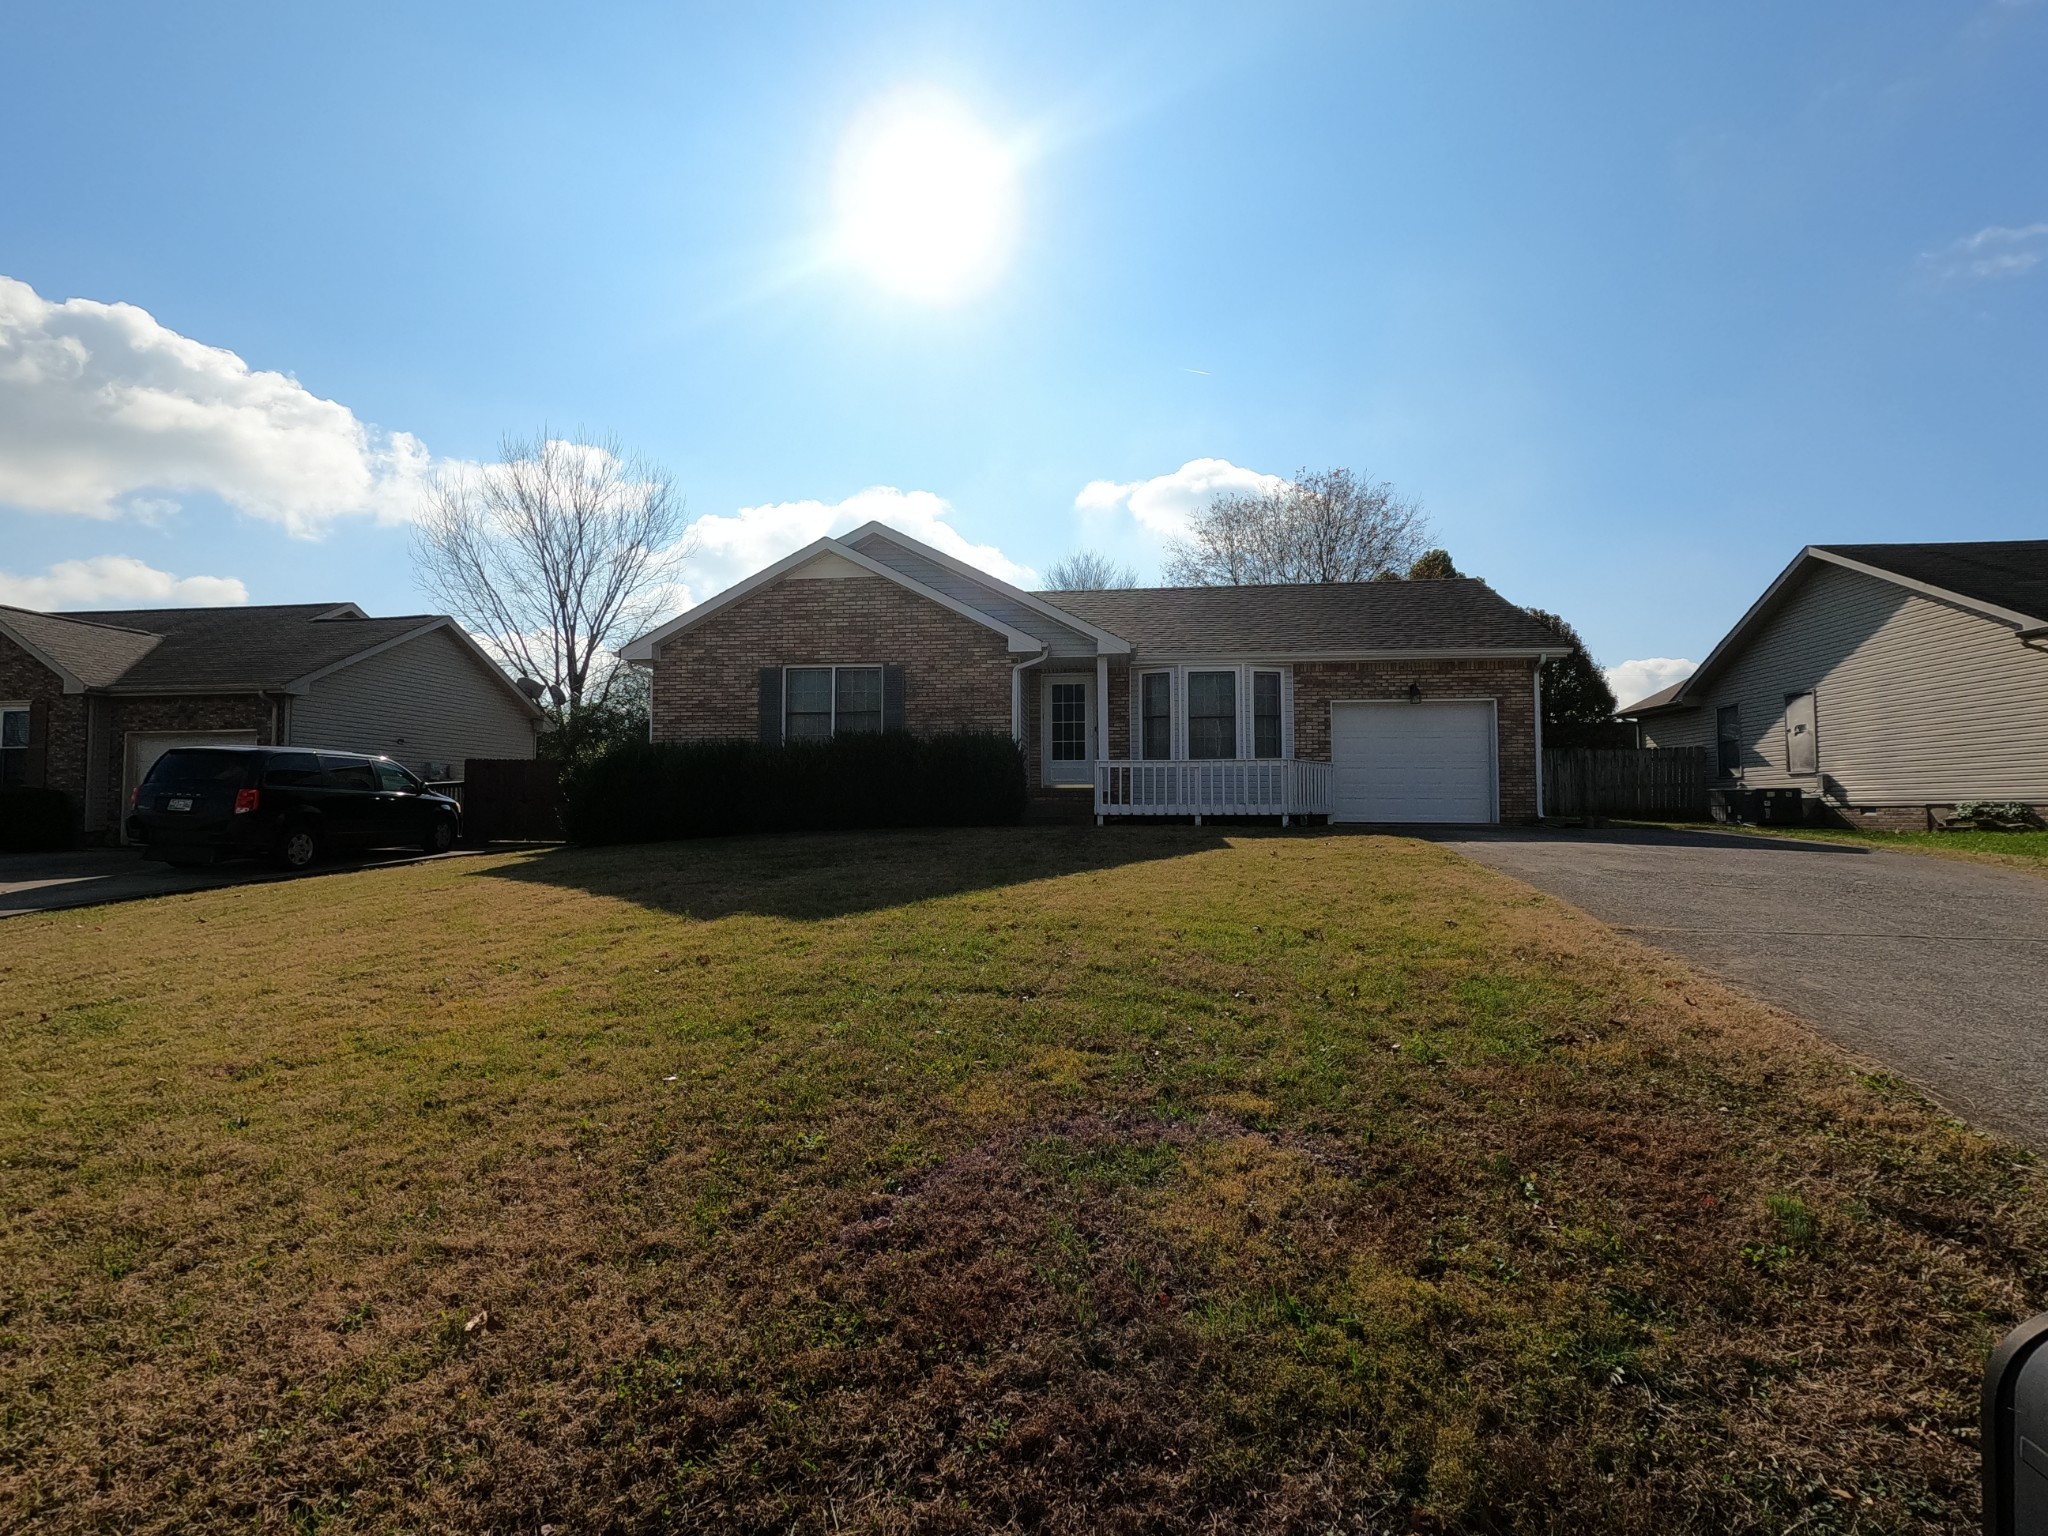 3236 N Senseney Cir Property Photo - Clarksville, TN real estate listing